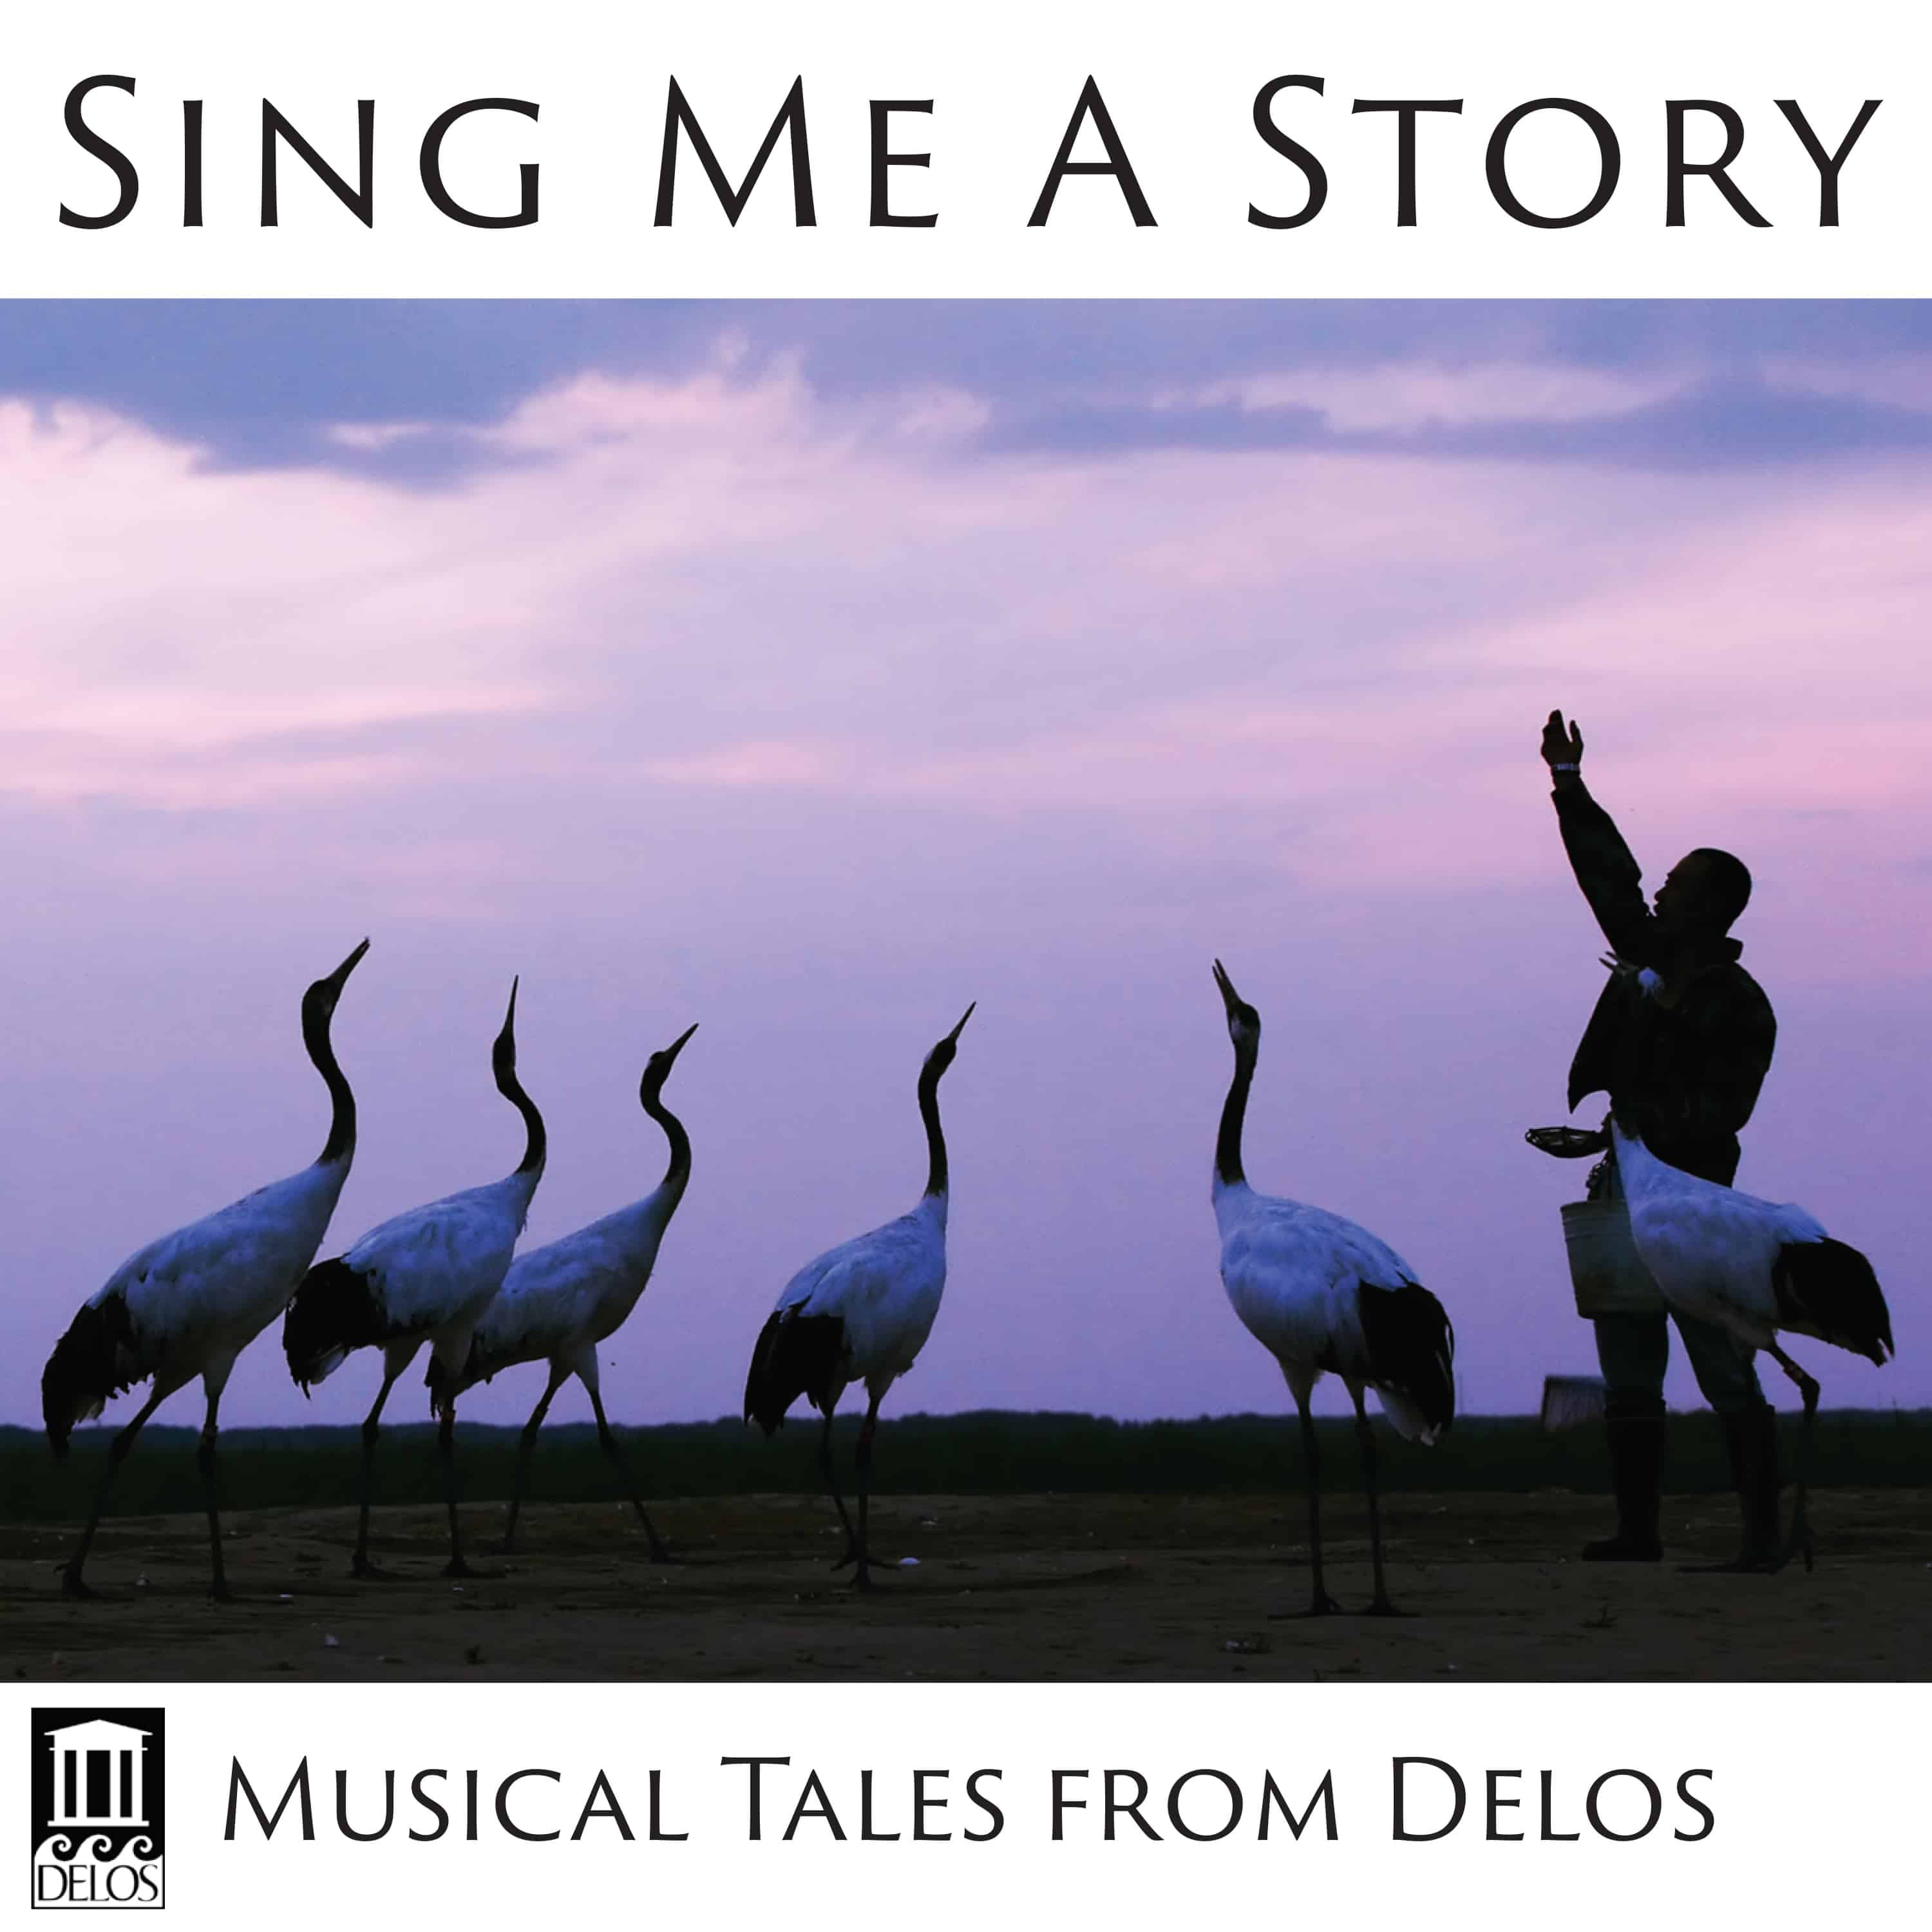 Sing Me A Story: Musical Tales from Delos